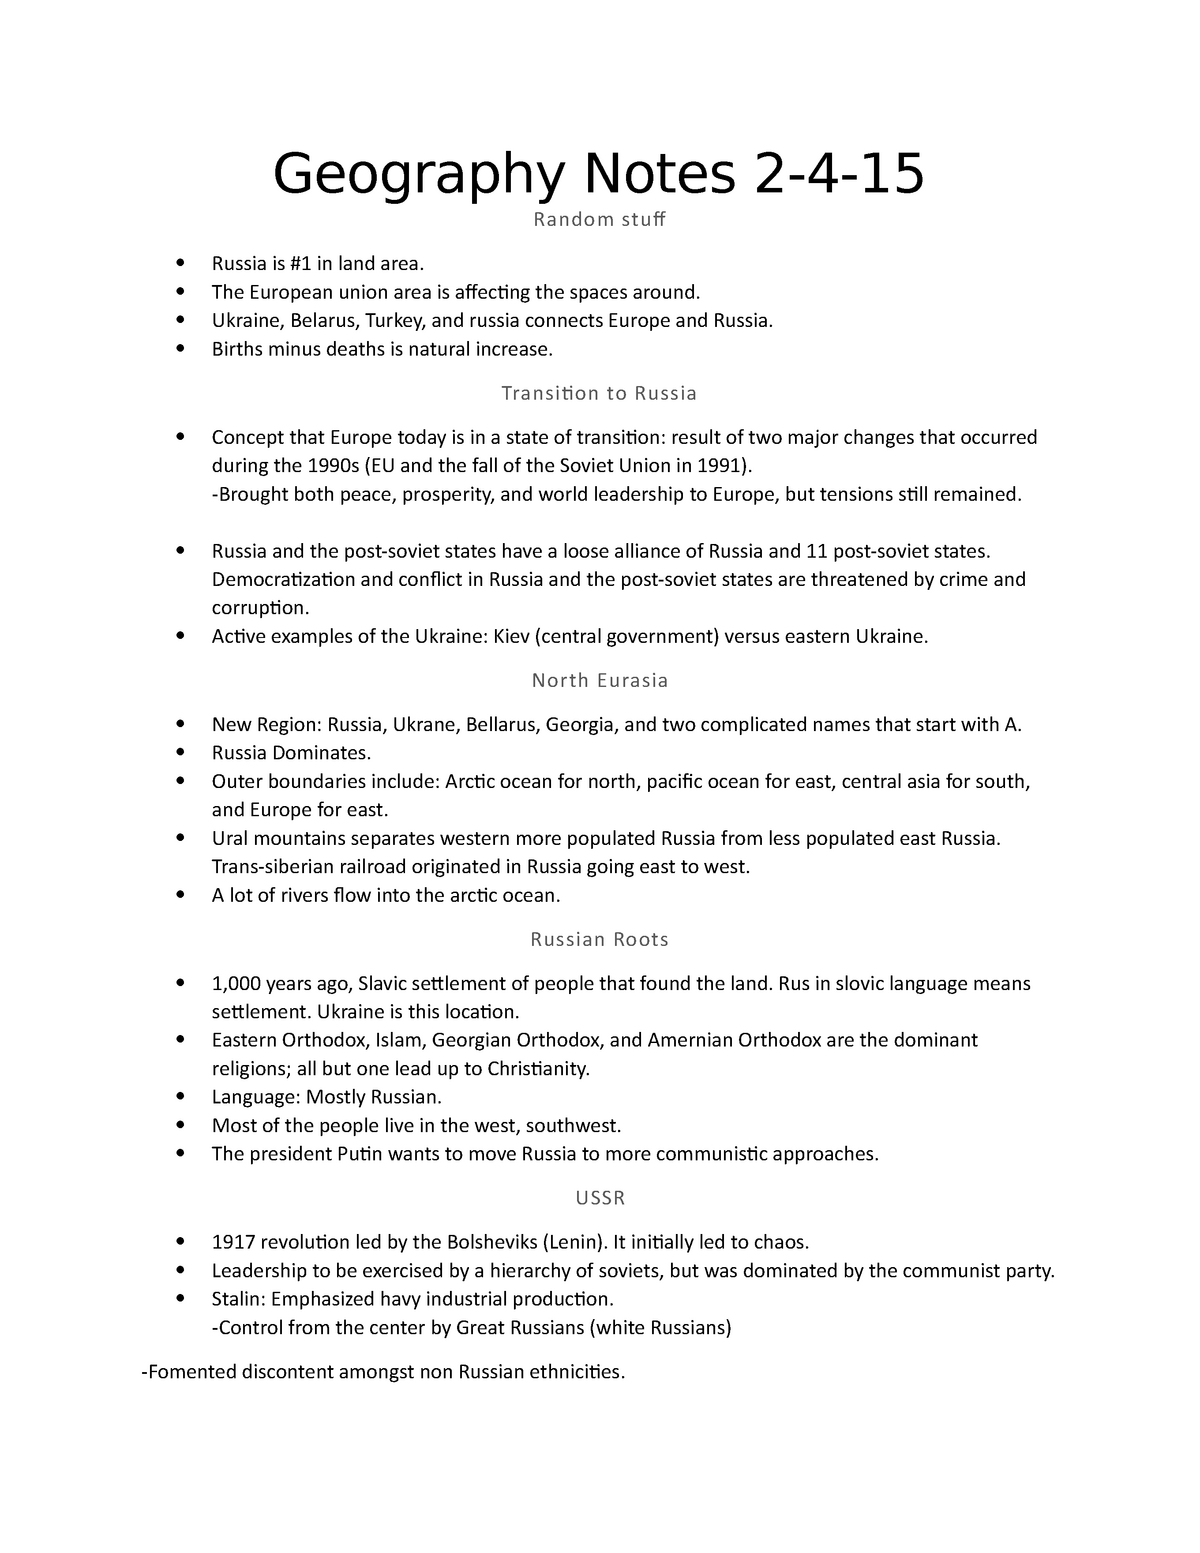 2-4-15 - Lecture notes 3 - GEOG 1101: World Regional